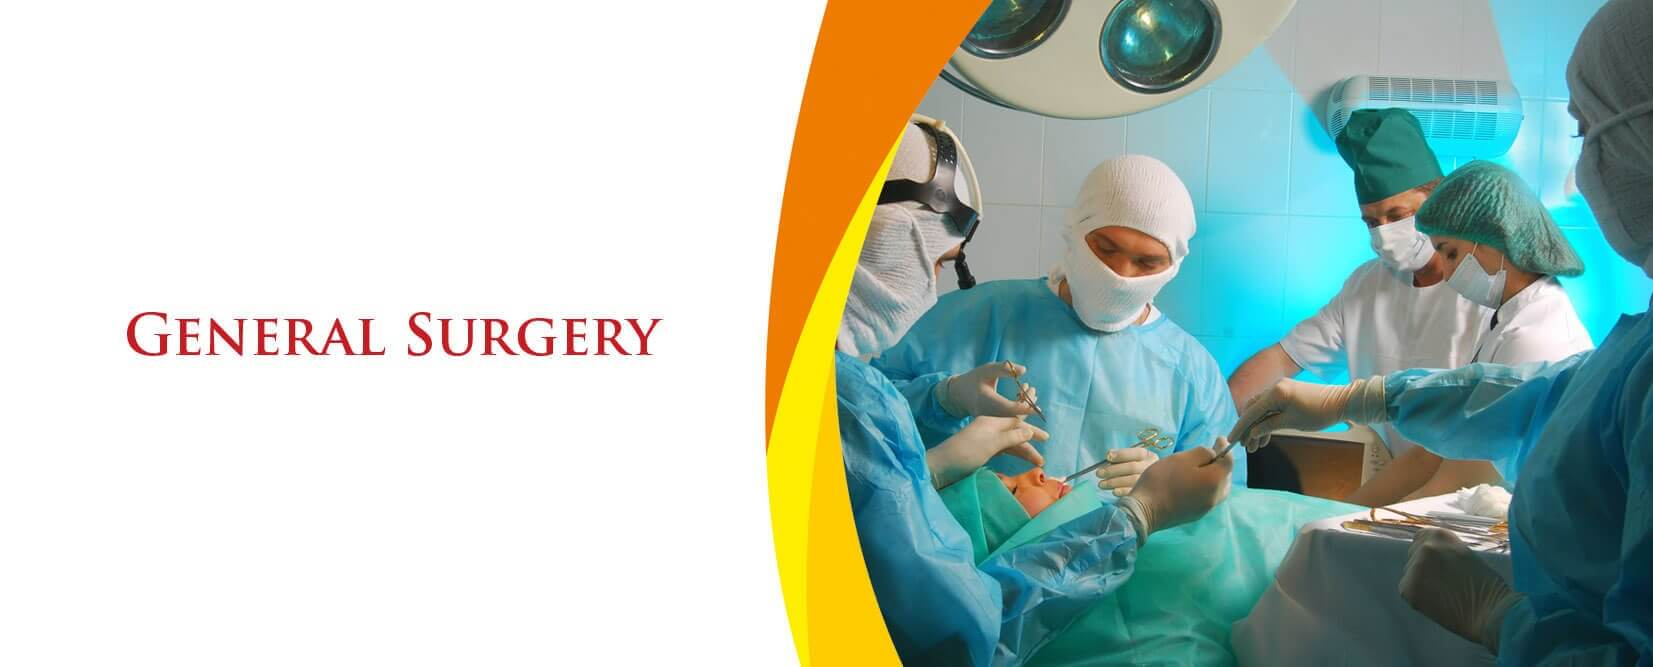 Best General Surgery in hyderabad - sunshinehospitals